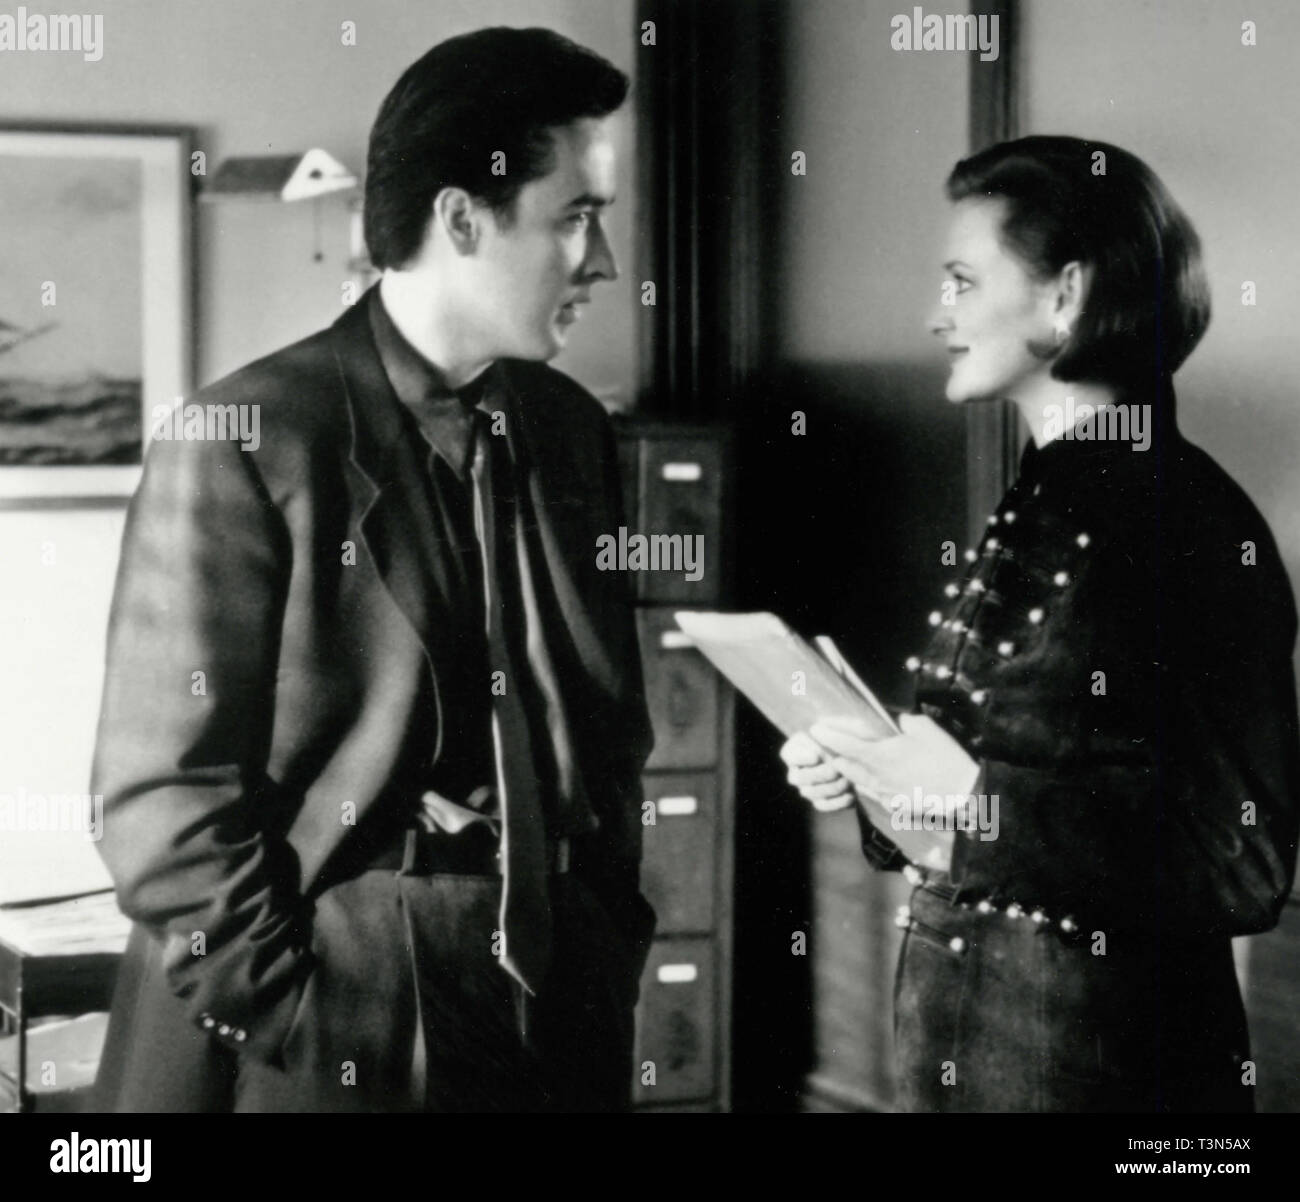 Actors Joan Cusack and John Cusack in the movie Grosse Pointe Blank, 1990s - Stock Image